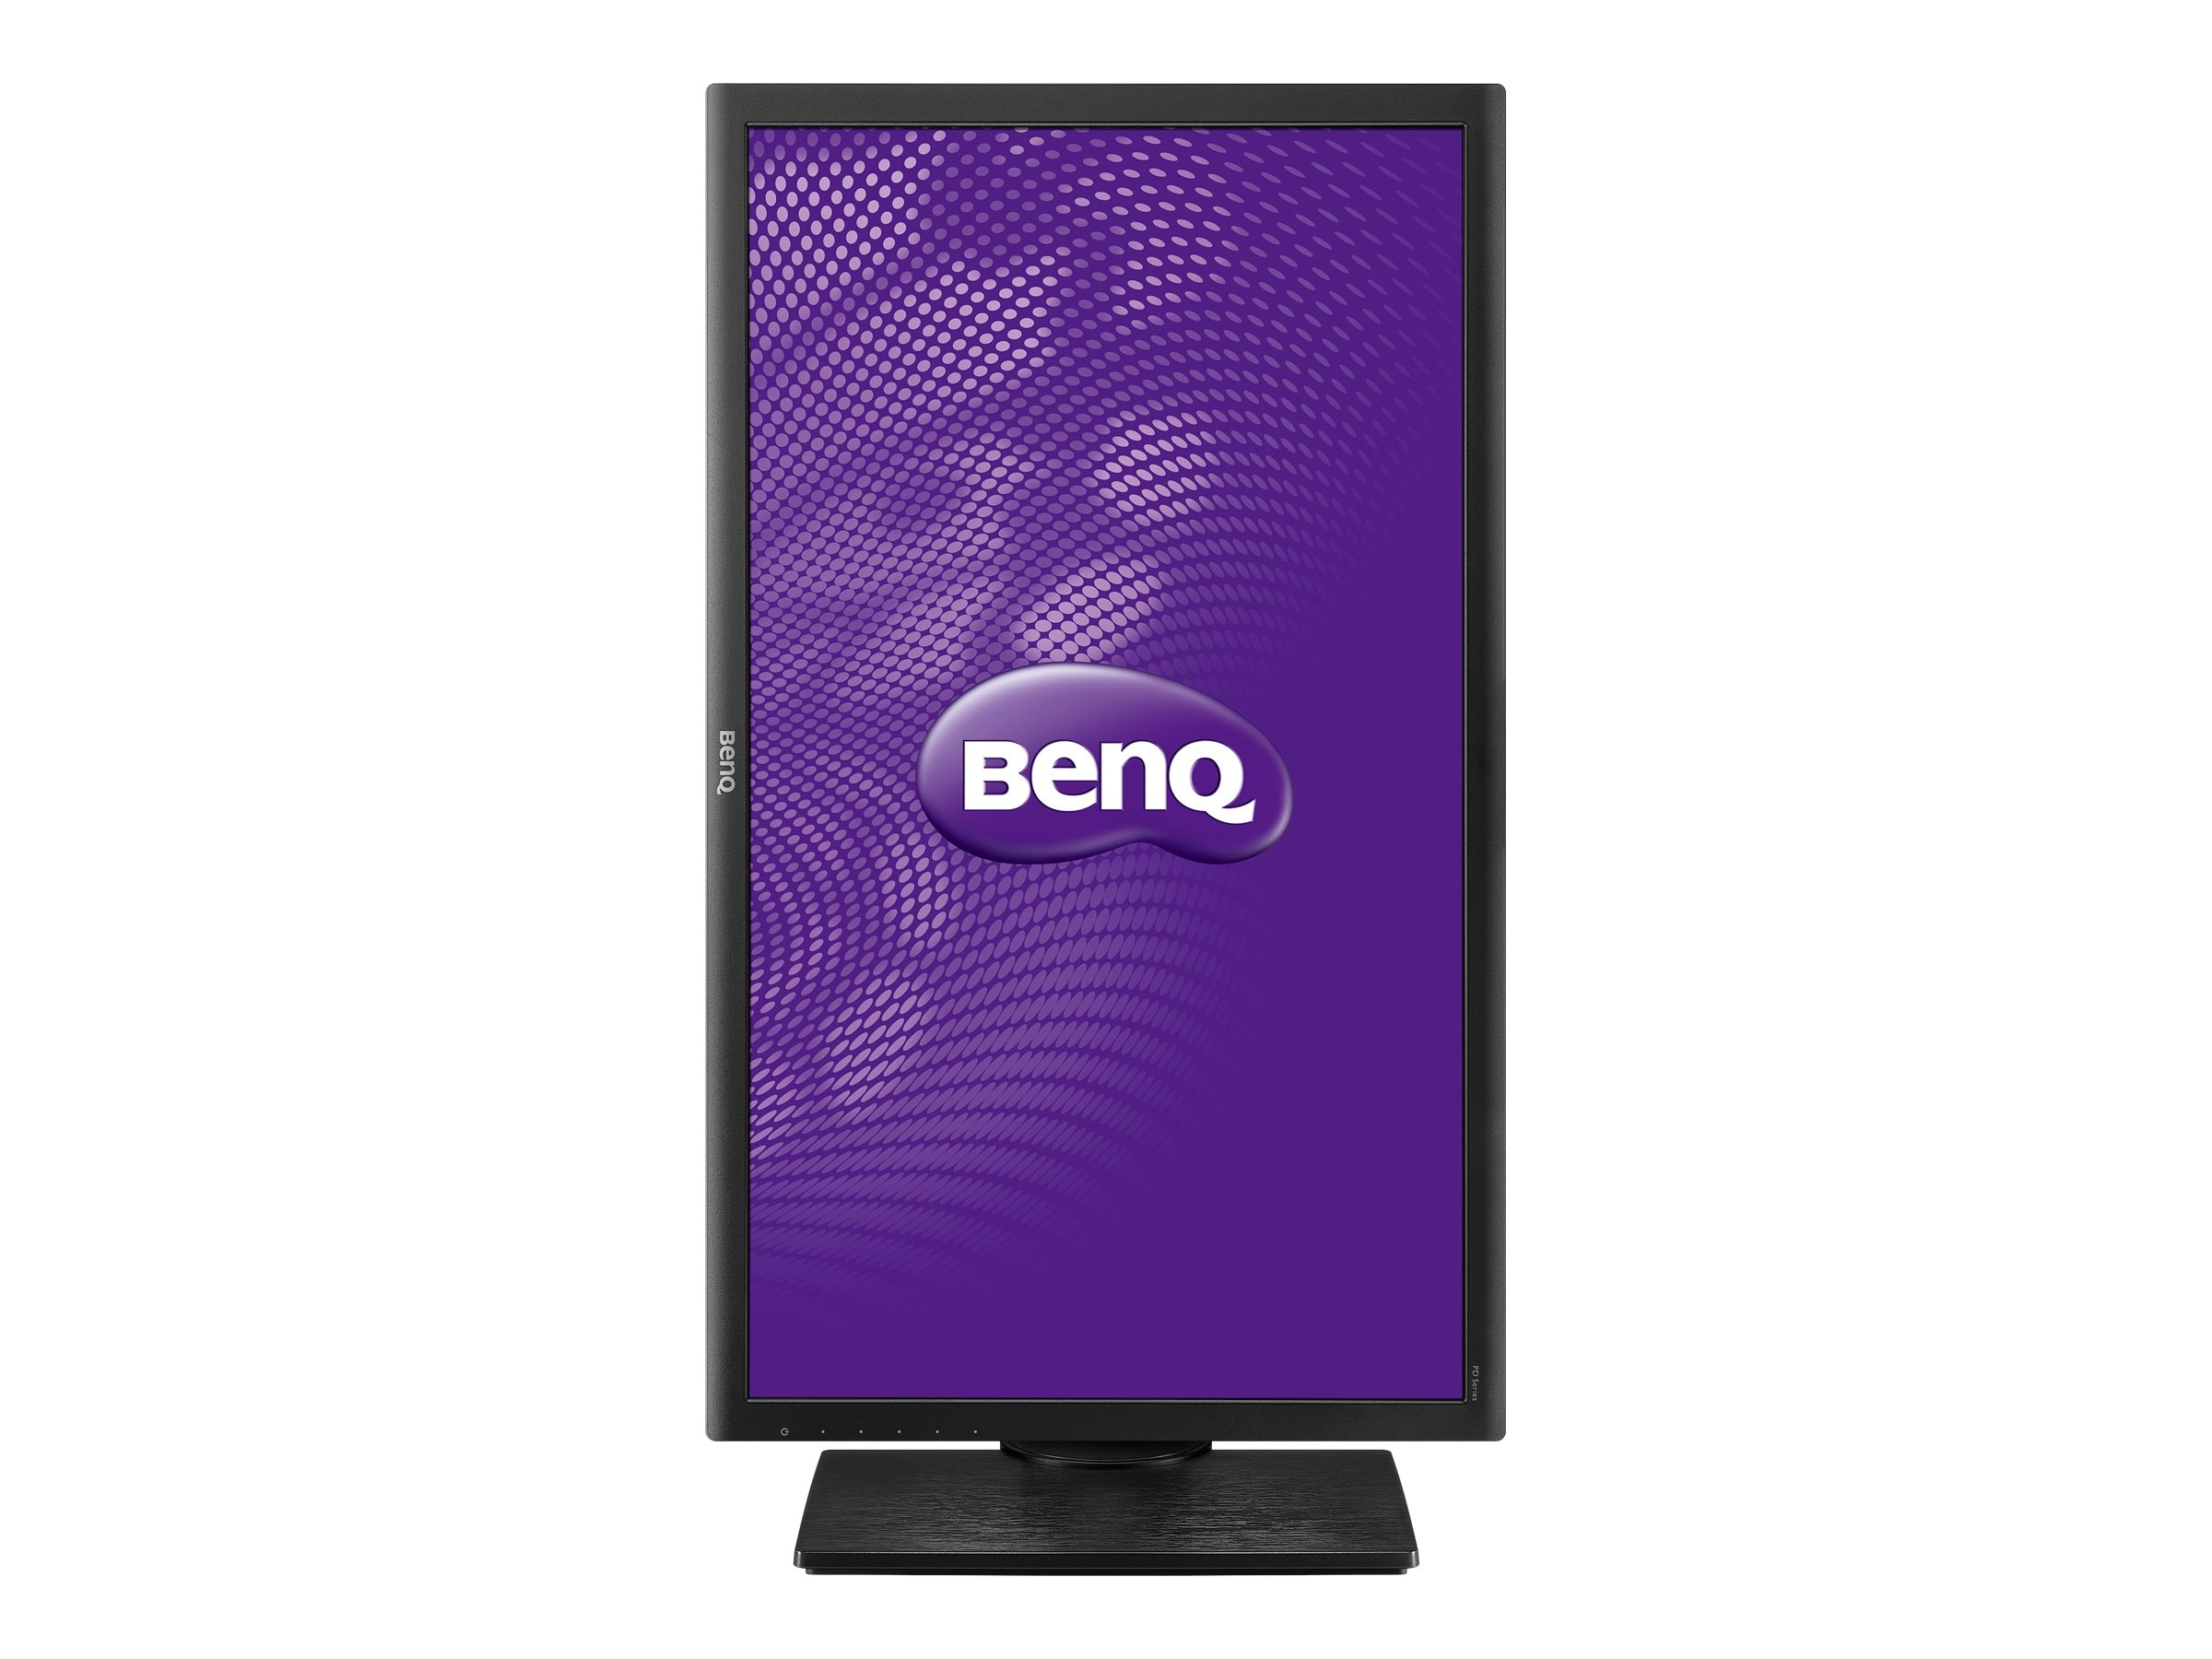 Benq 27 PD2700Q WQHD LED-LCD Monitor, Black, PD2700Q